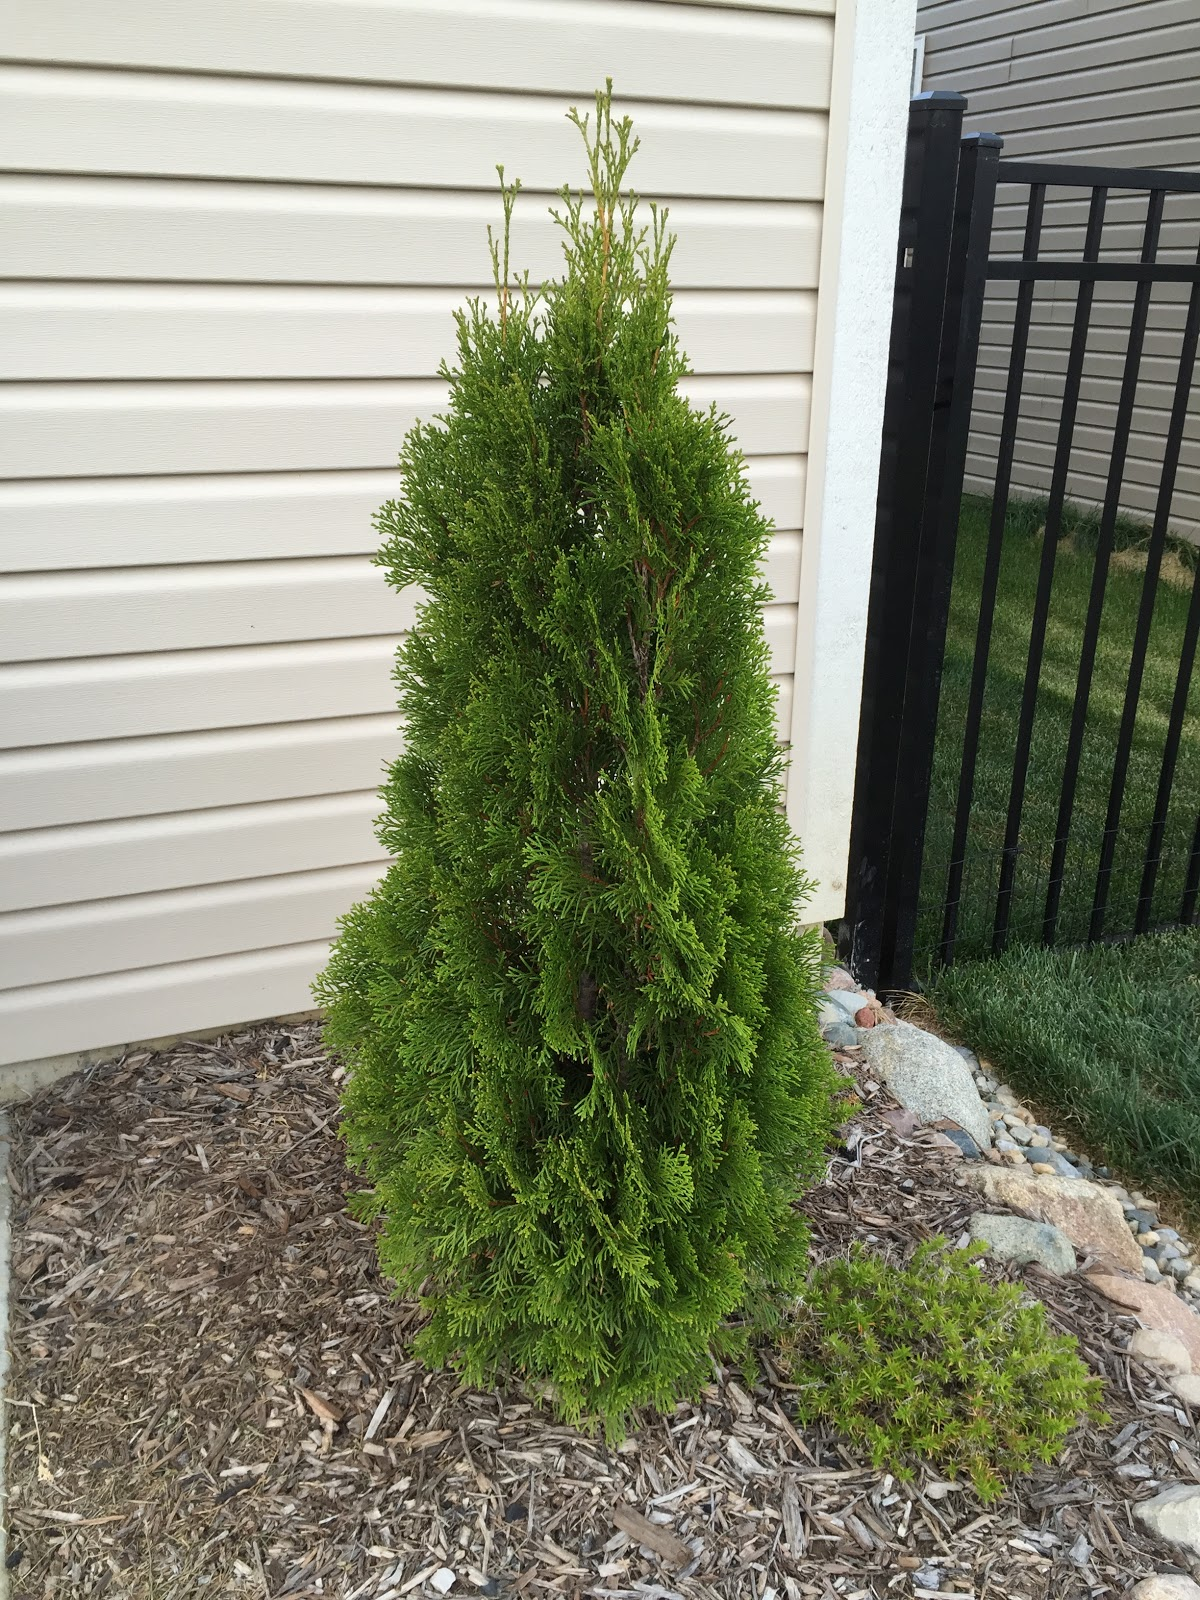 Emerald Green Arborvitae One Year Growth Before And After